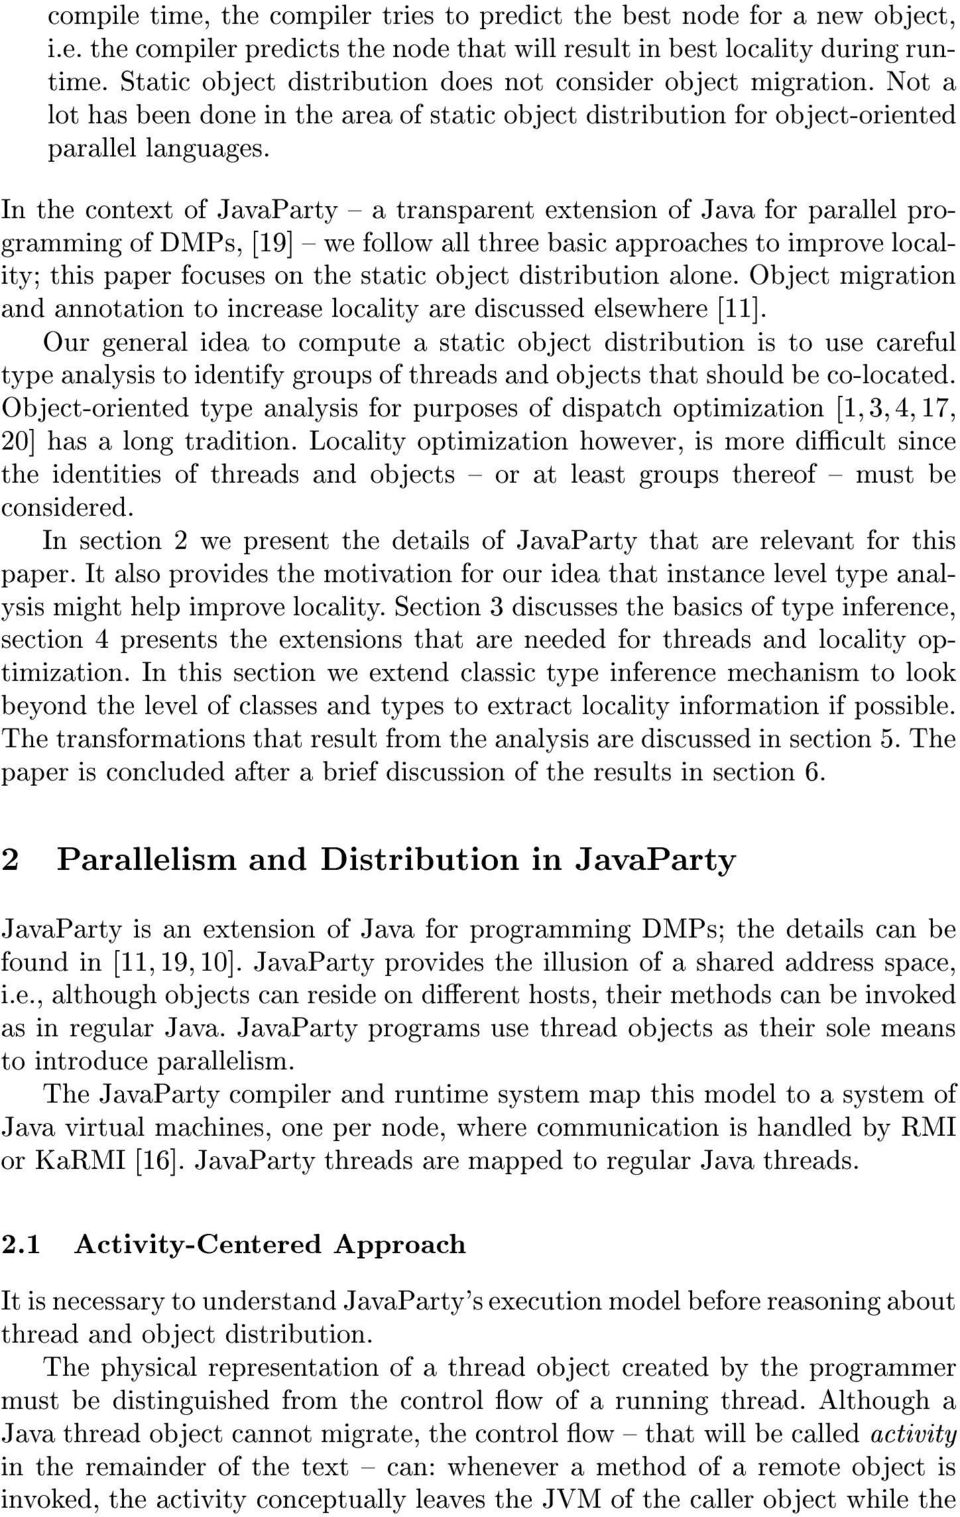 In the context of JavaParty { a transparent extension of Java for parallel programming of DMPs, [19] { we follow all three basic approaches to improve locality; this paper focuses on the static